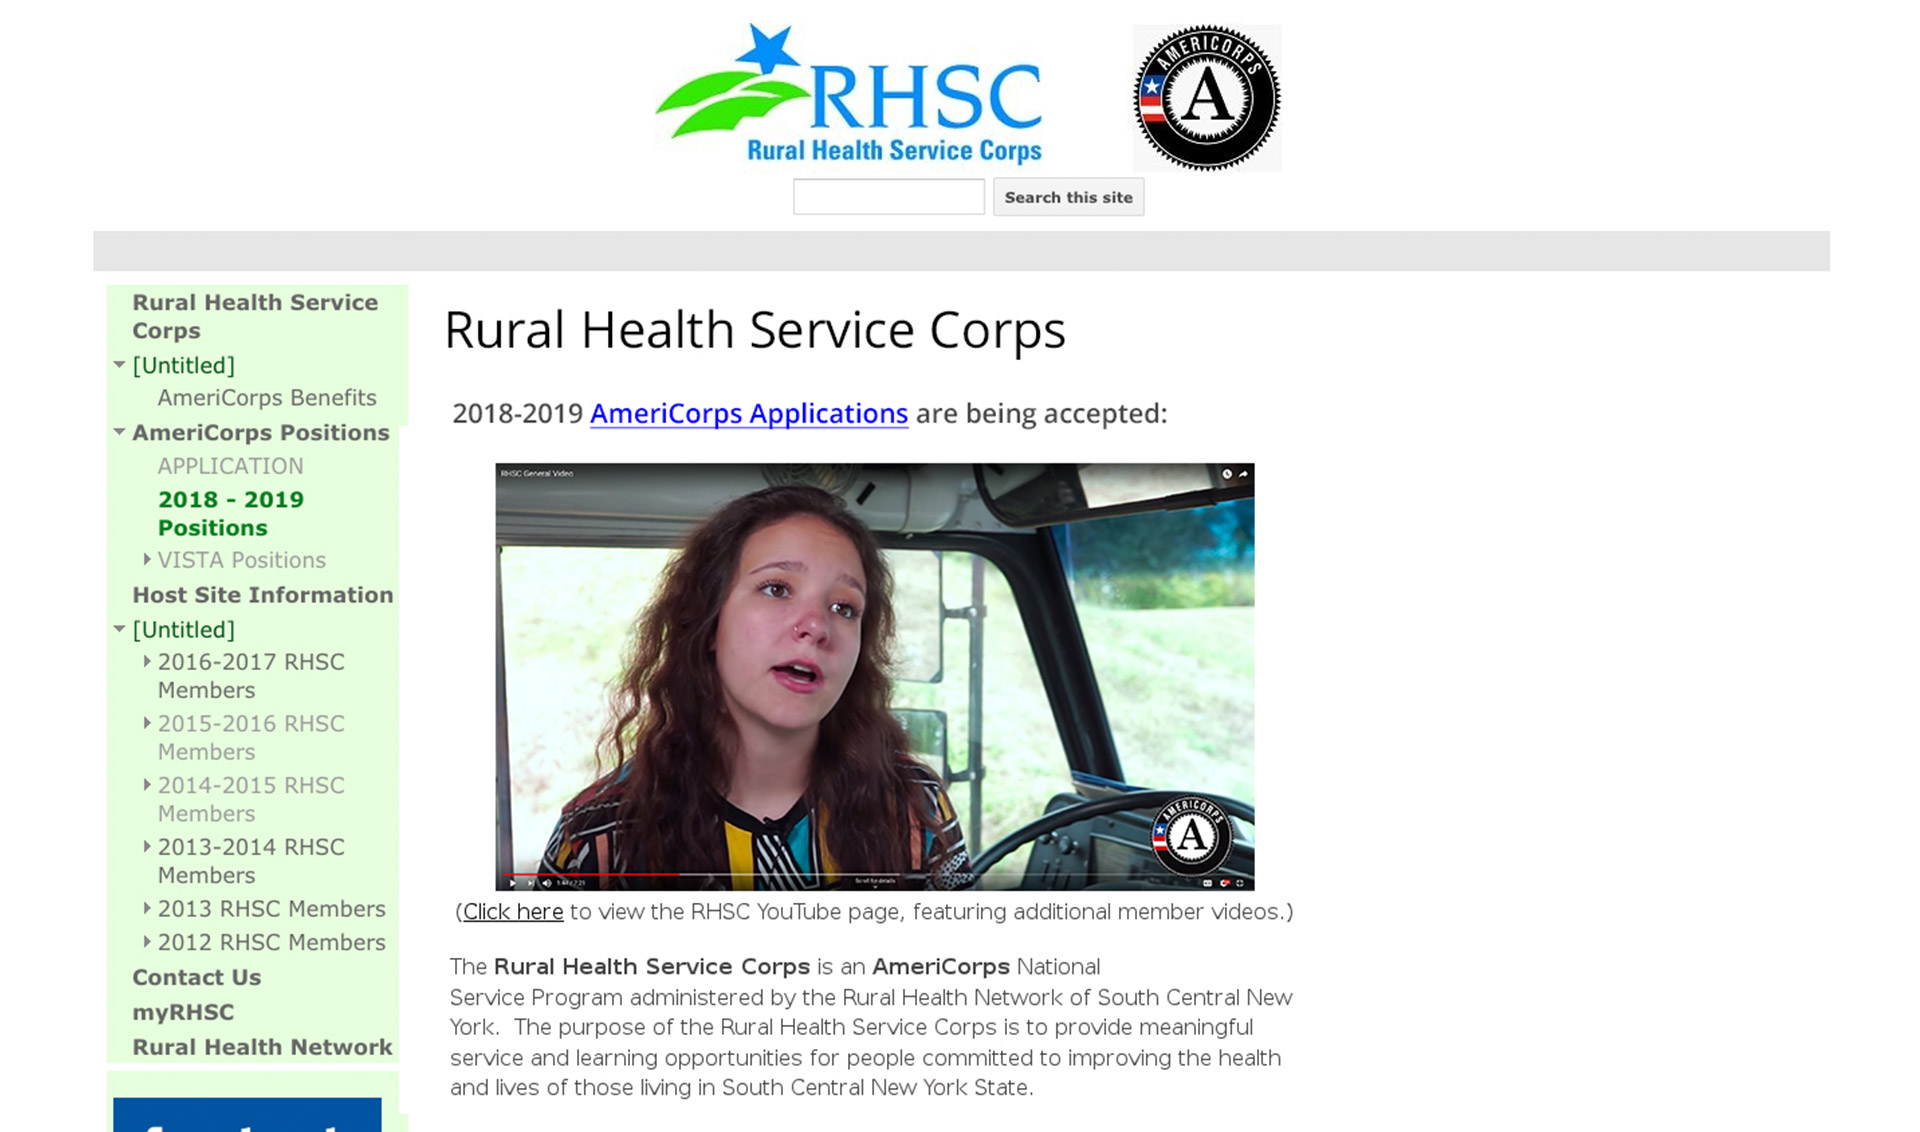 Old Rural Health Service Corps website